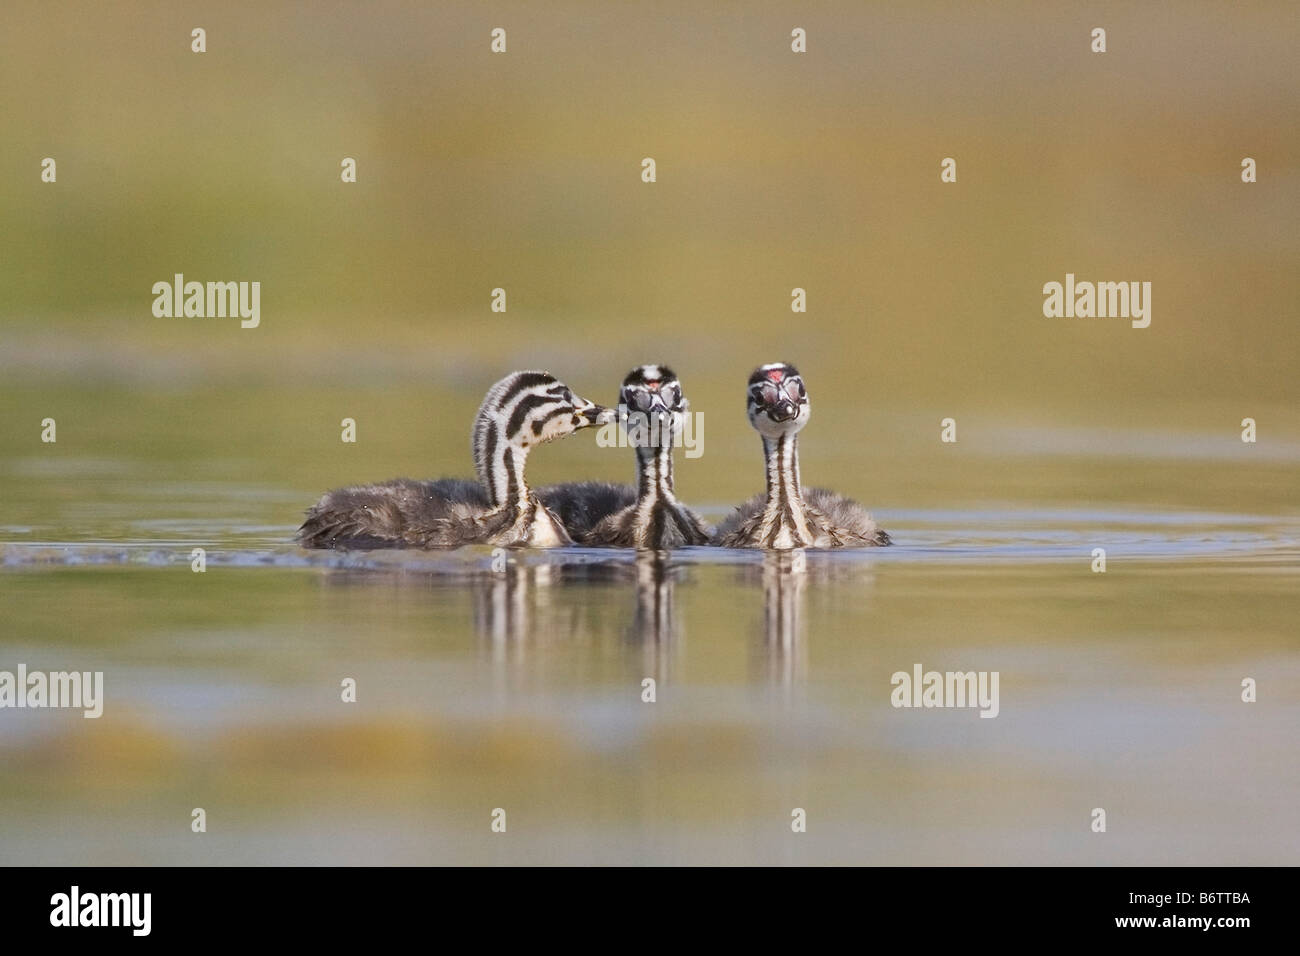 3 young grebes side by side on the pond - Stock Image